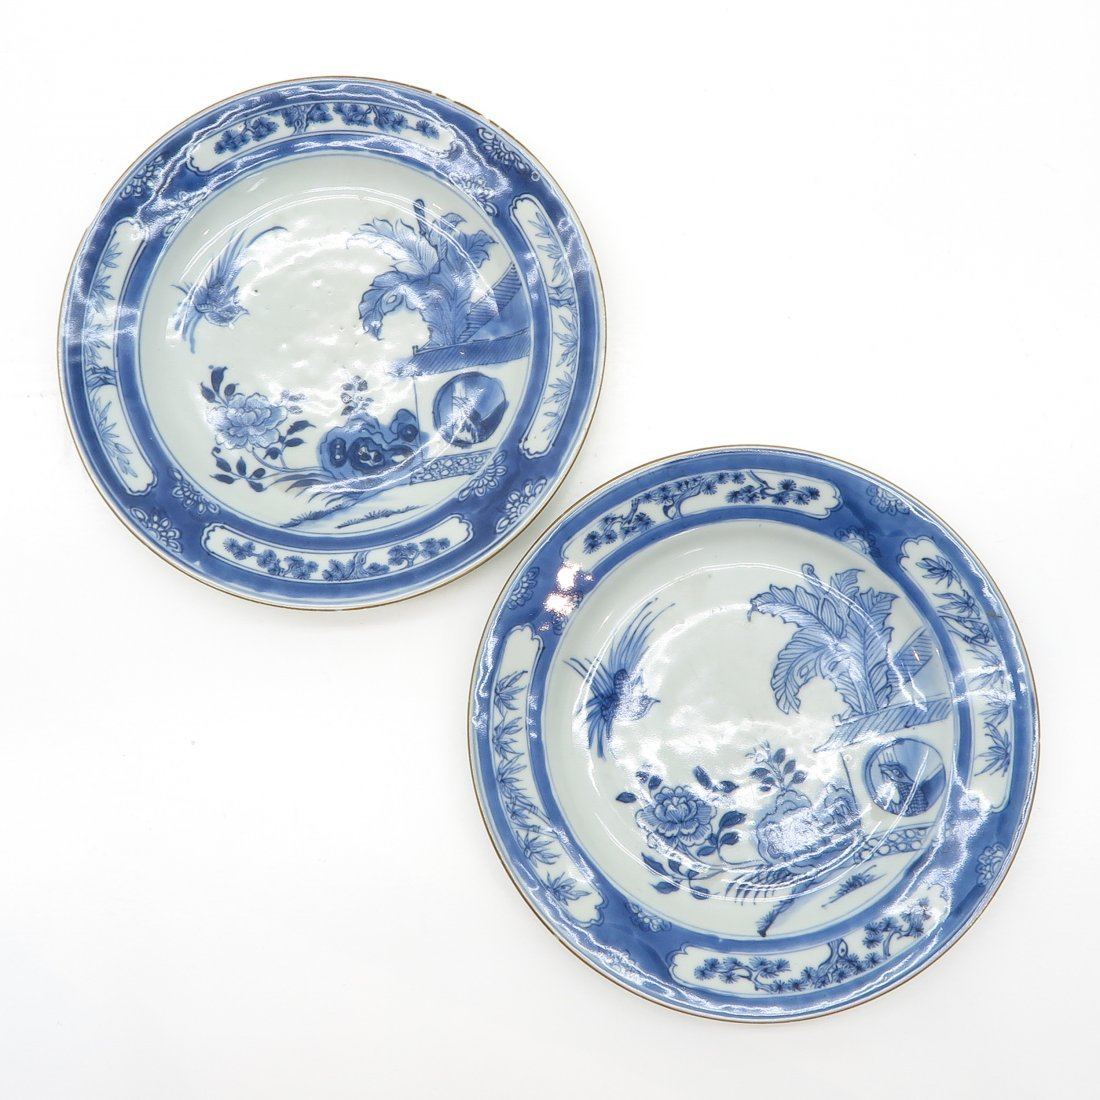 Lot of 2 18th Century China Porcelain Plates